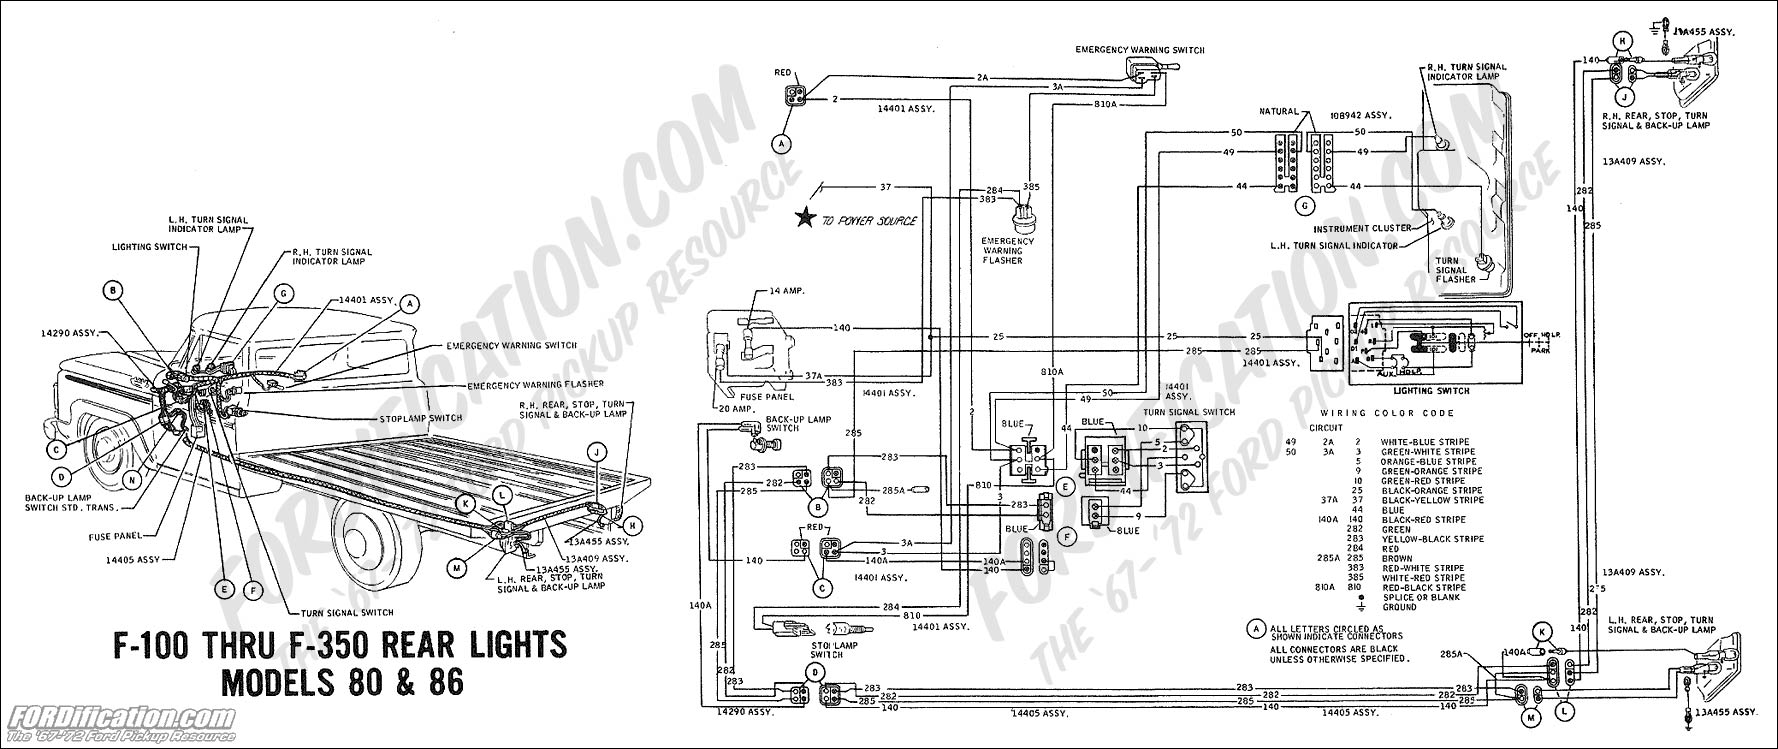 hight resolution of 1970 f350 master diagram wiring diagram todayford truck technical drawings and schematics section h wiring 1970